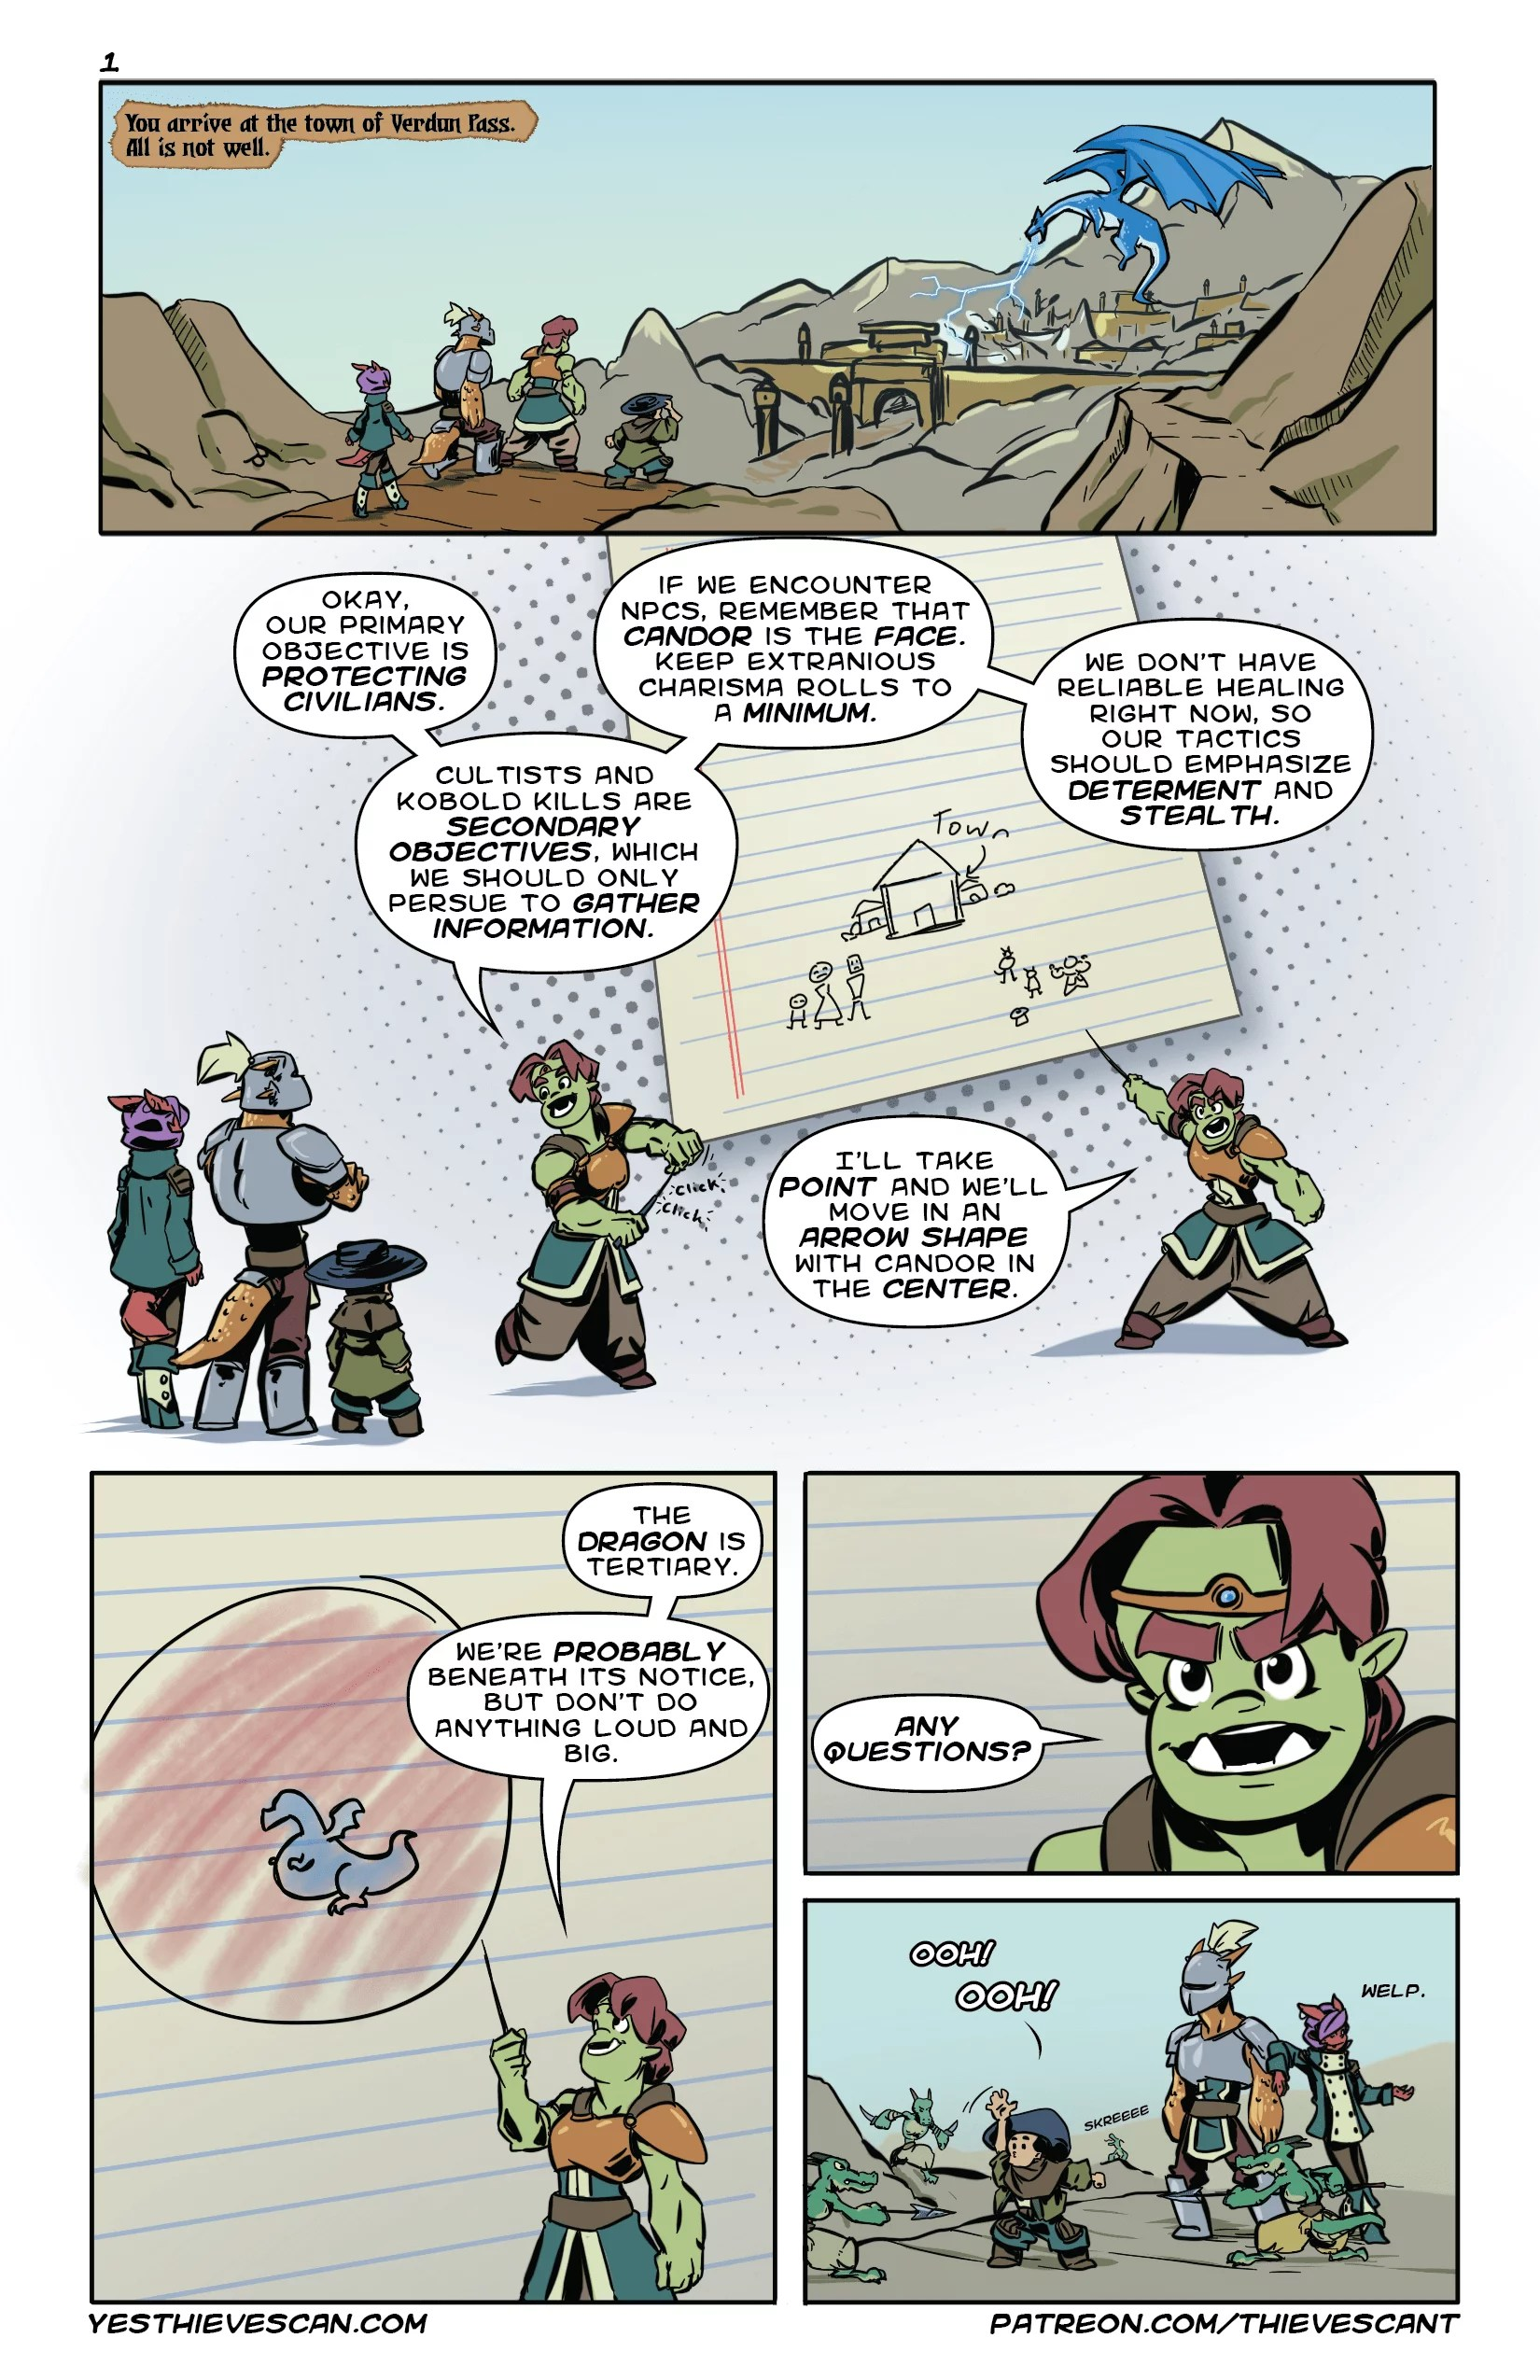 Every Thieves Can't Story starts with a kobold ambush.